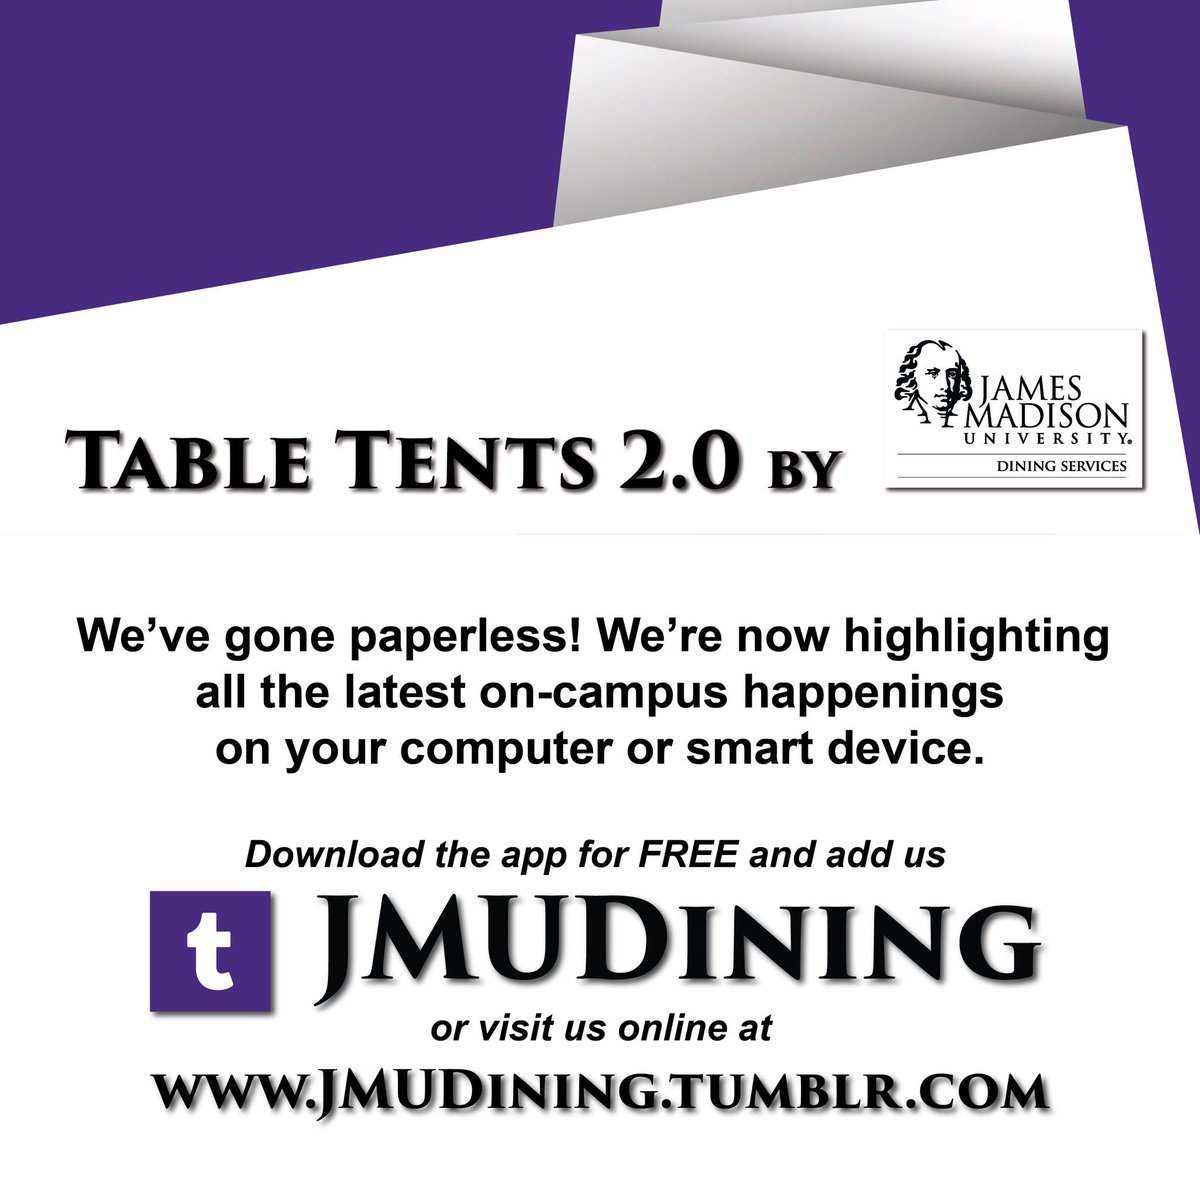 JMU Dining Services on Twitter  To follow us on Tumblr visit //t.co/eP5aO4Afvk. #TableTents2Point0u2026    sc 1 st  Twitter & JMU Dining Services on Twitter: